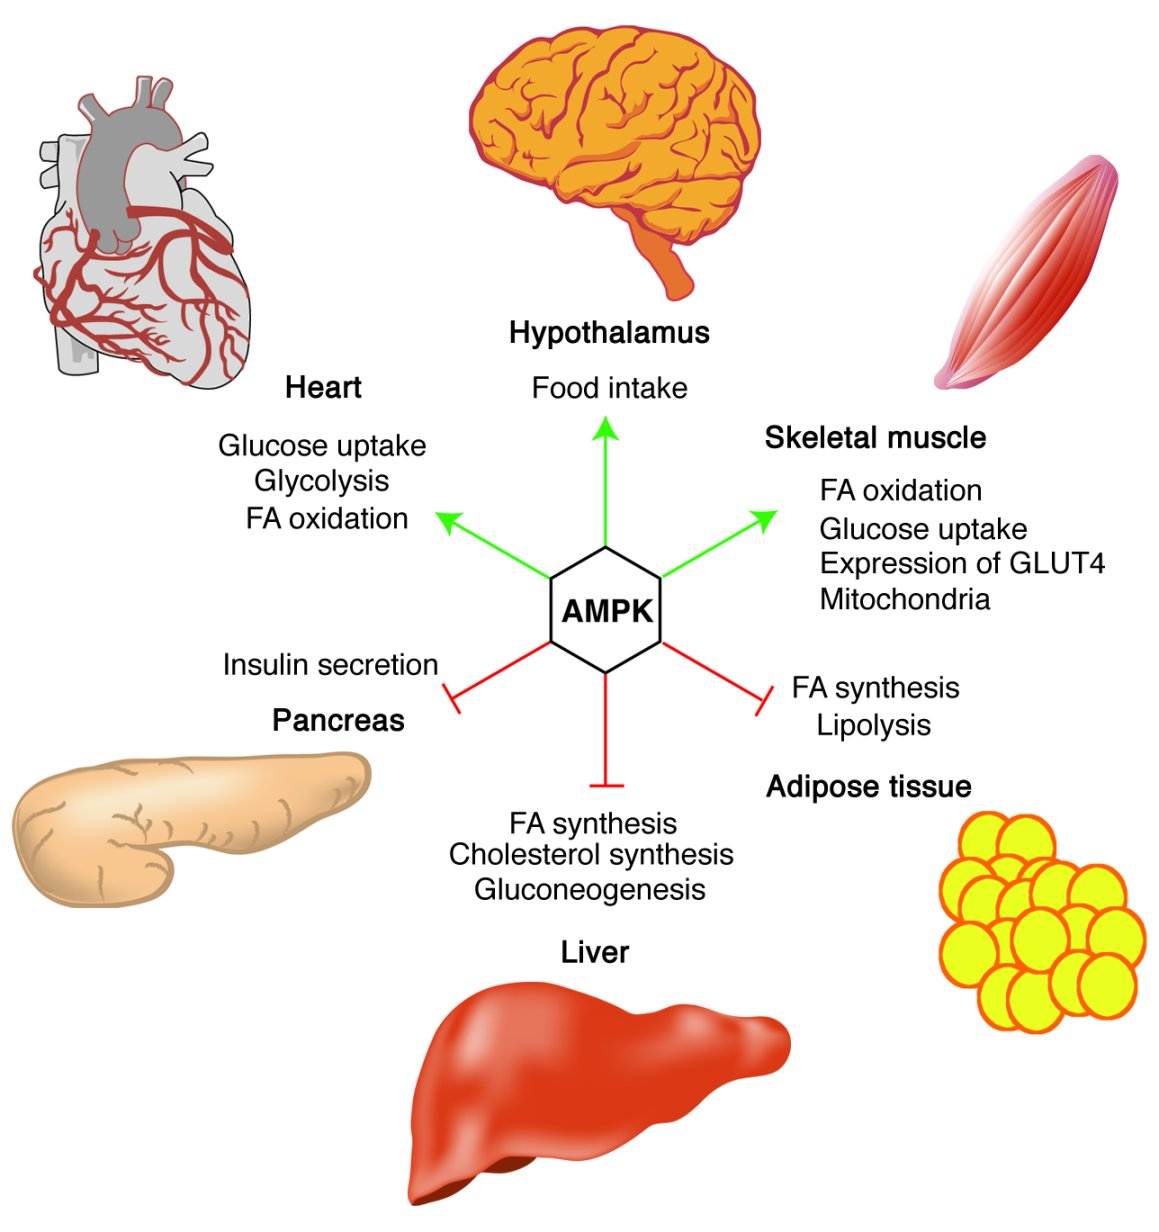 AMP-activated protein kinase: the guardian of cardiac energy status